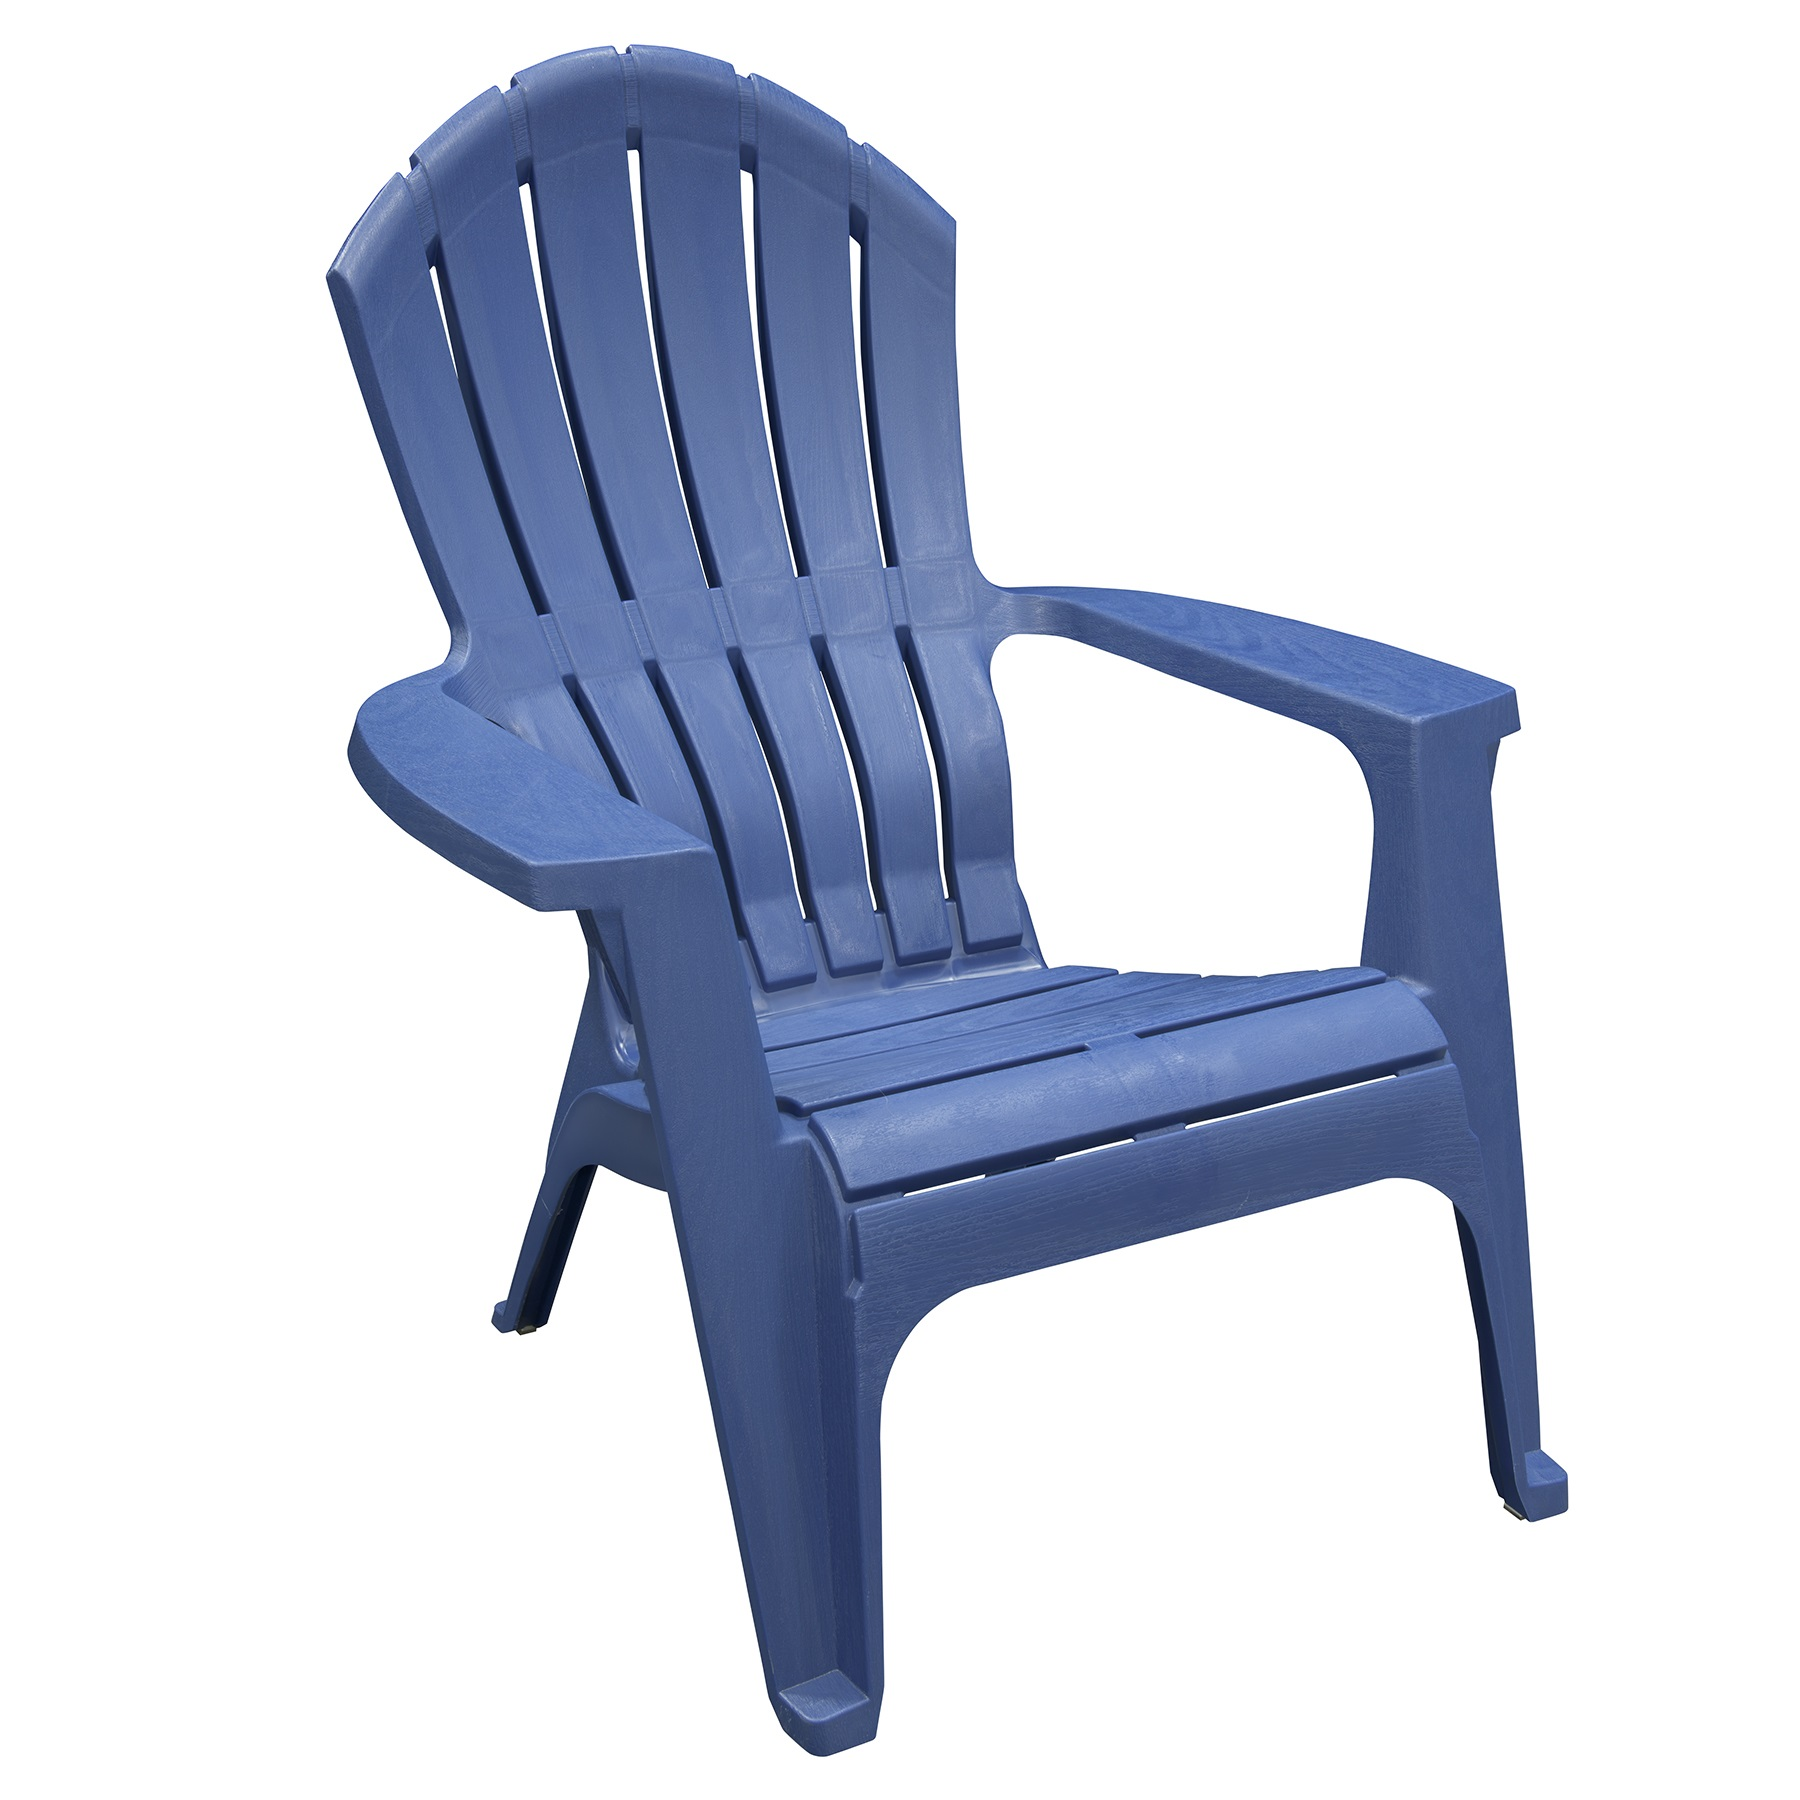 Adams Manufacturing RealComfort Adirondack Chair   Patriotic Blue